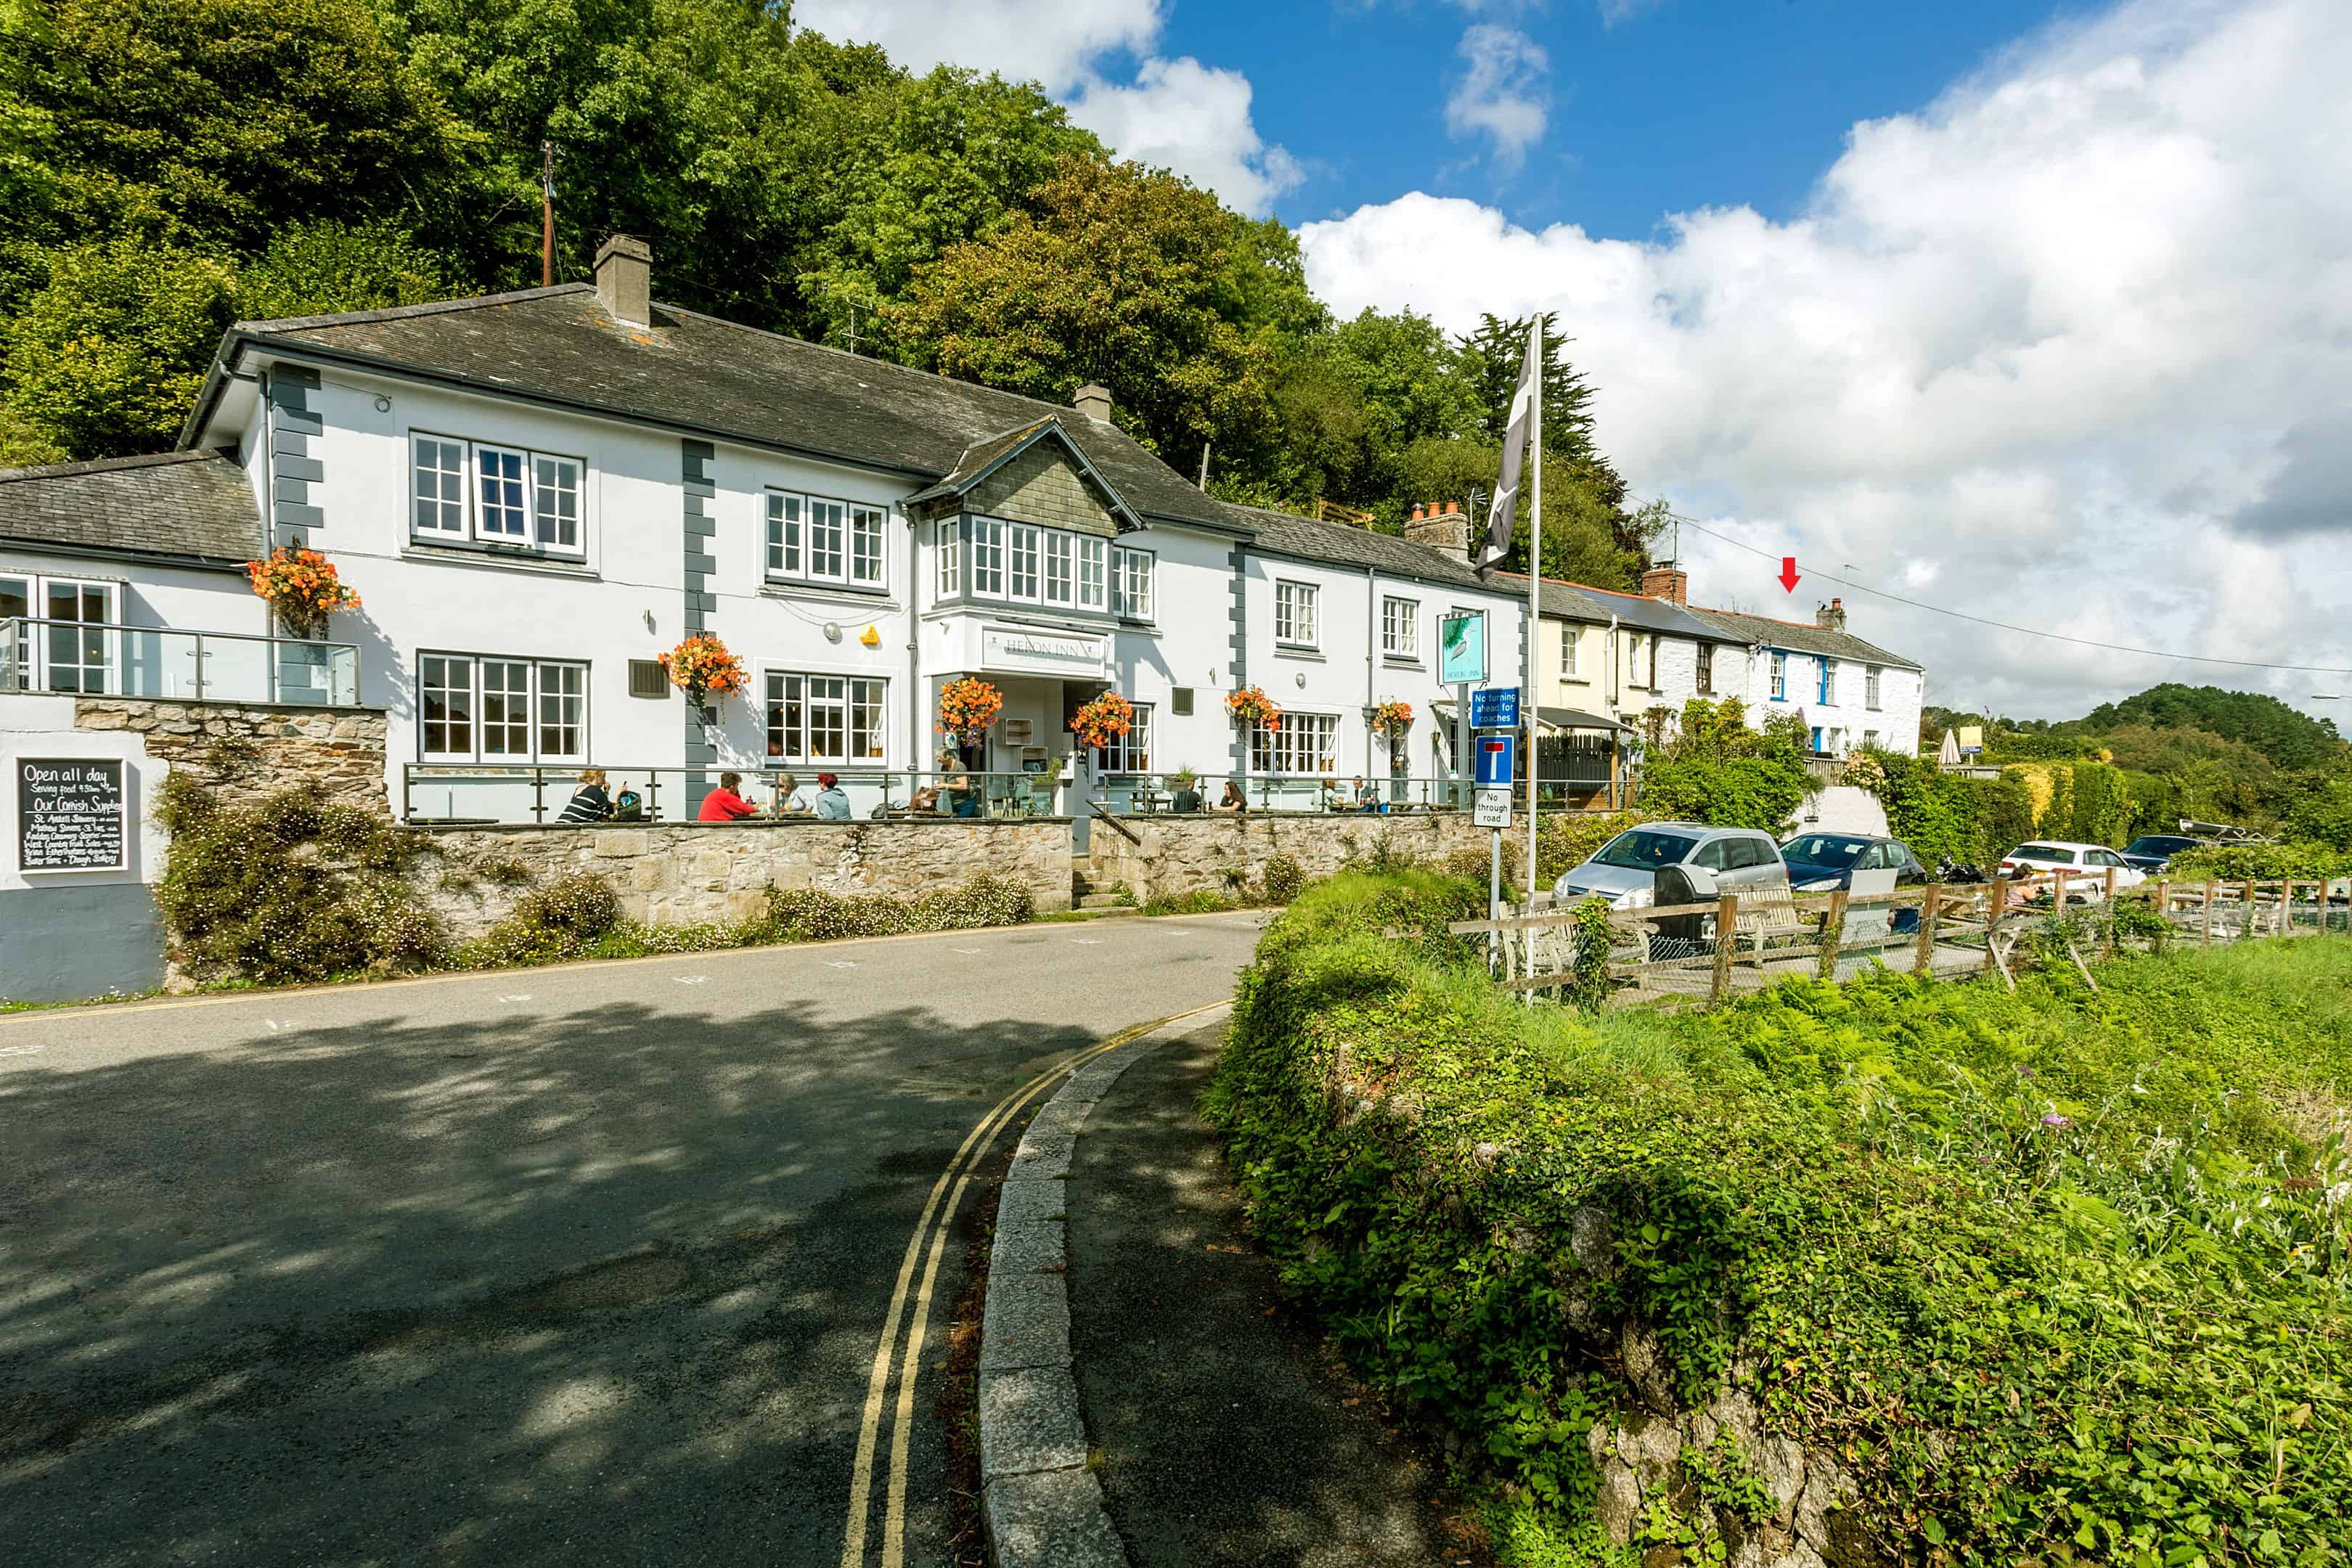 Heron Inn at Malpas